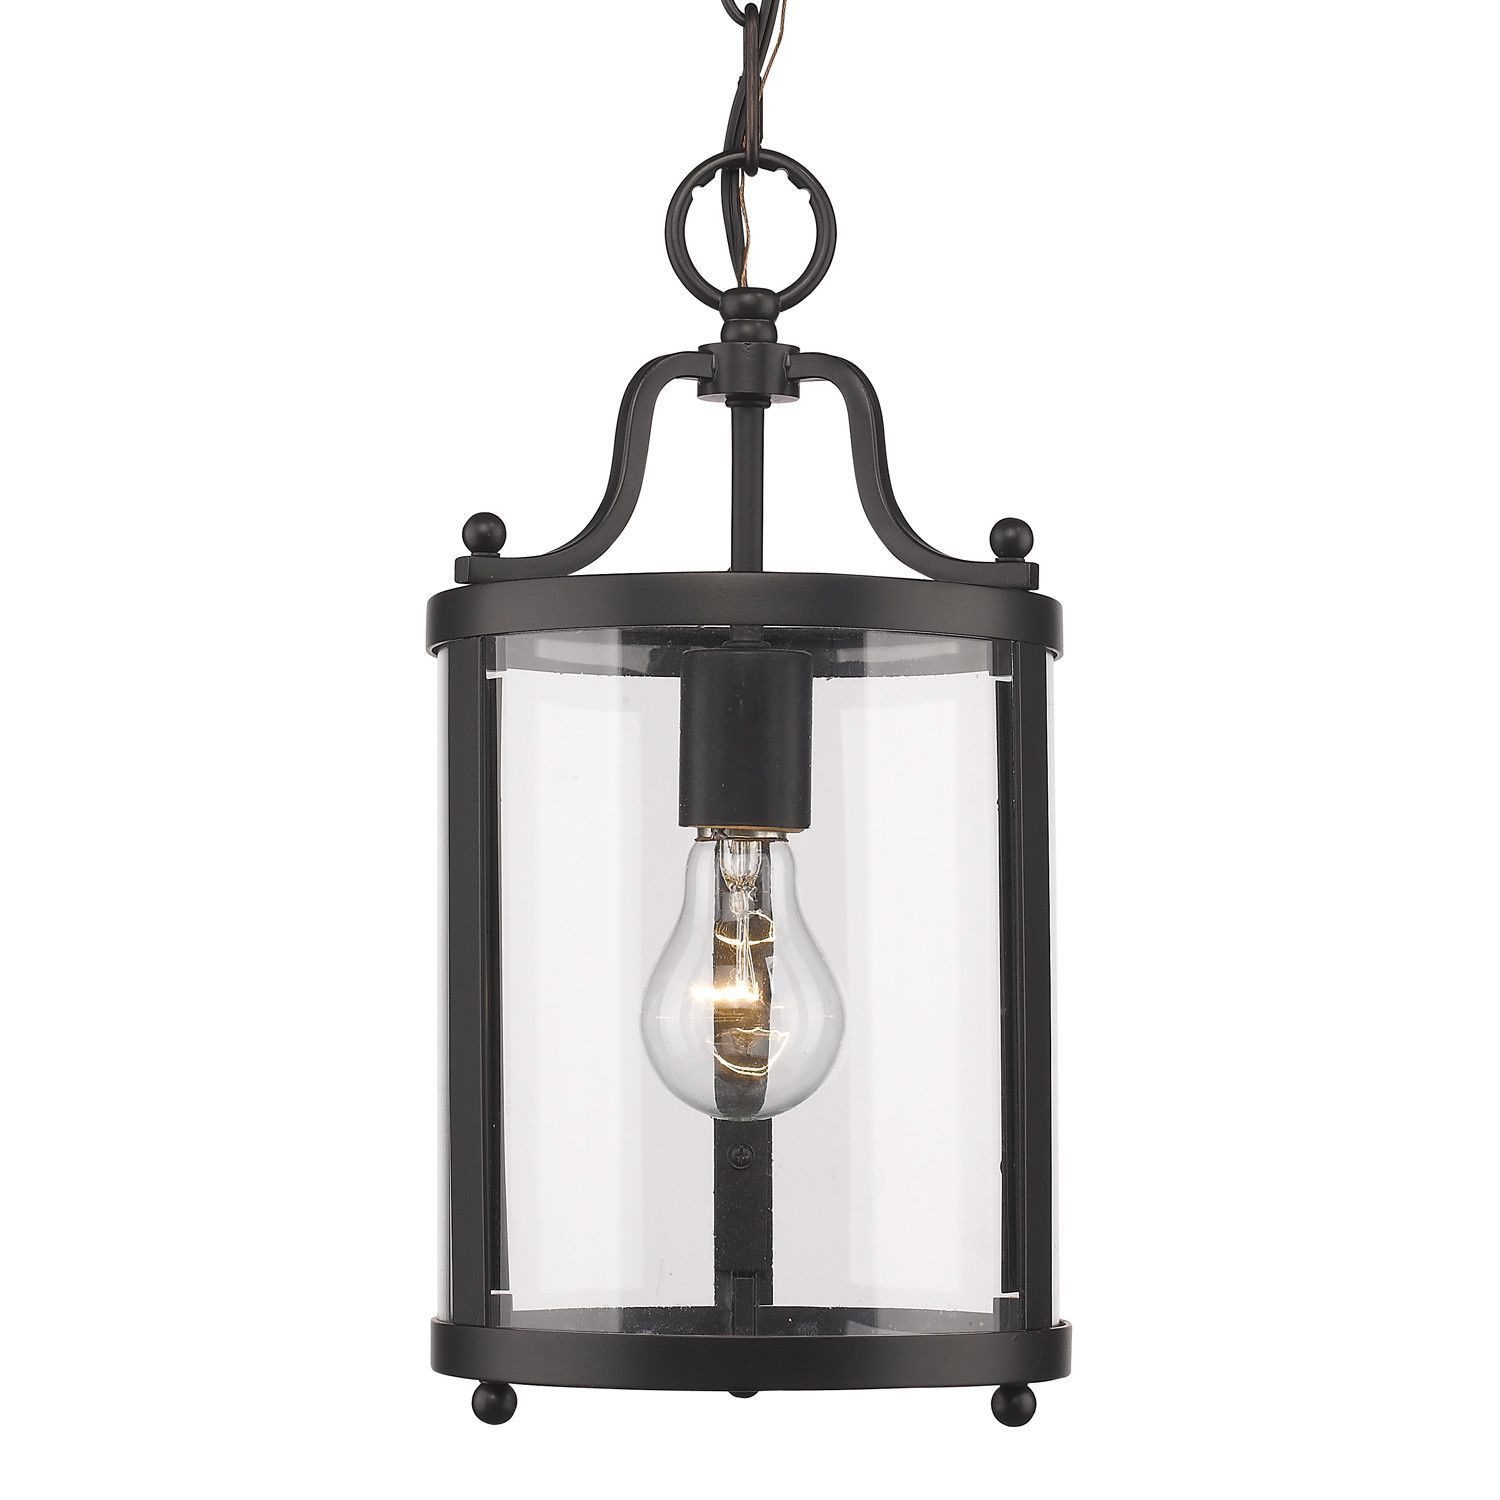 Tessie 1-Light Mini Pendant | Products | Pinterest for Sherri-Ann 3-Light Lantern Square / Rectangle Pendants (Image 25 of 30)